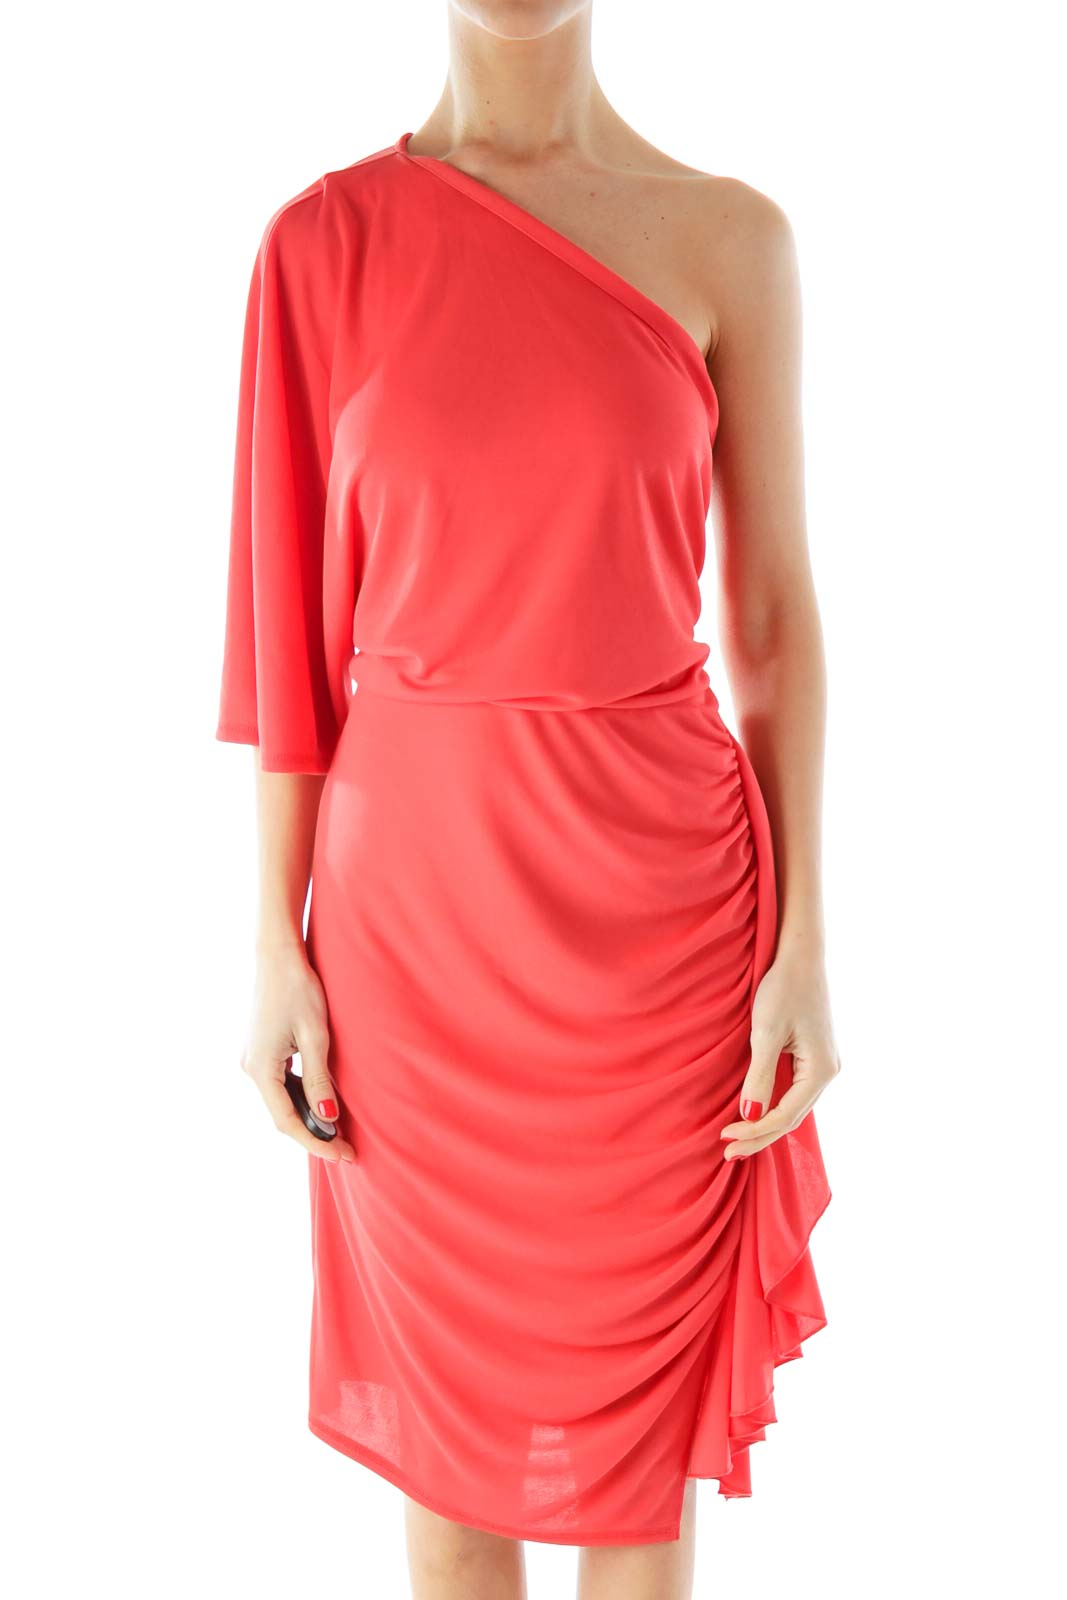 Orange One-Shoulder Cocktail Dress